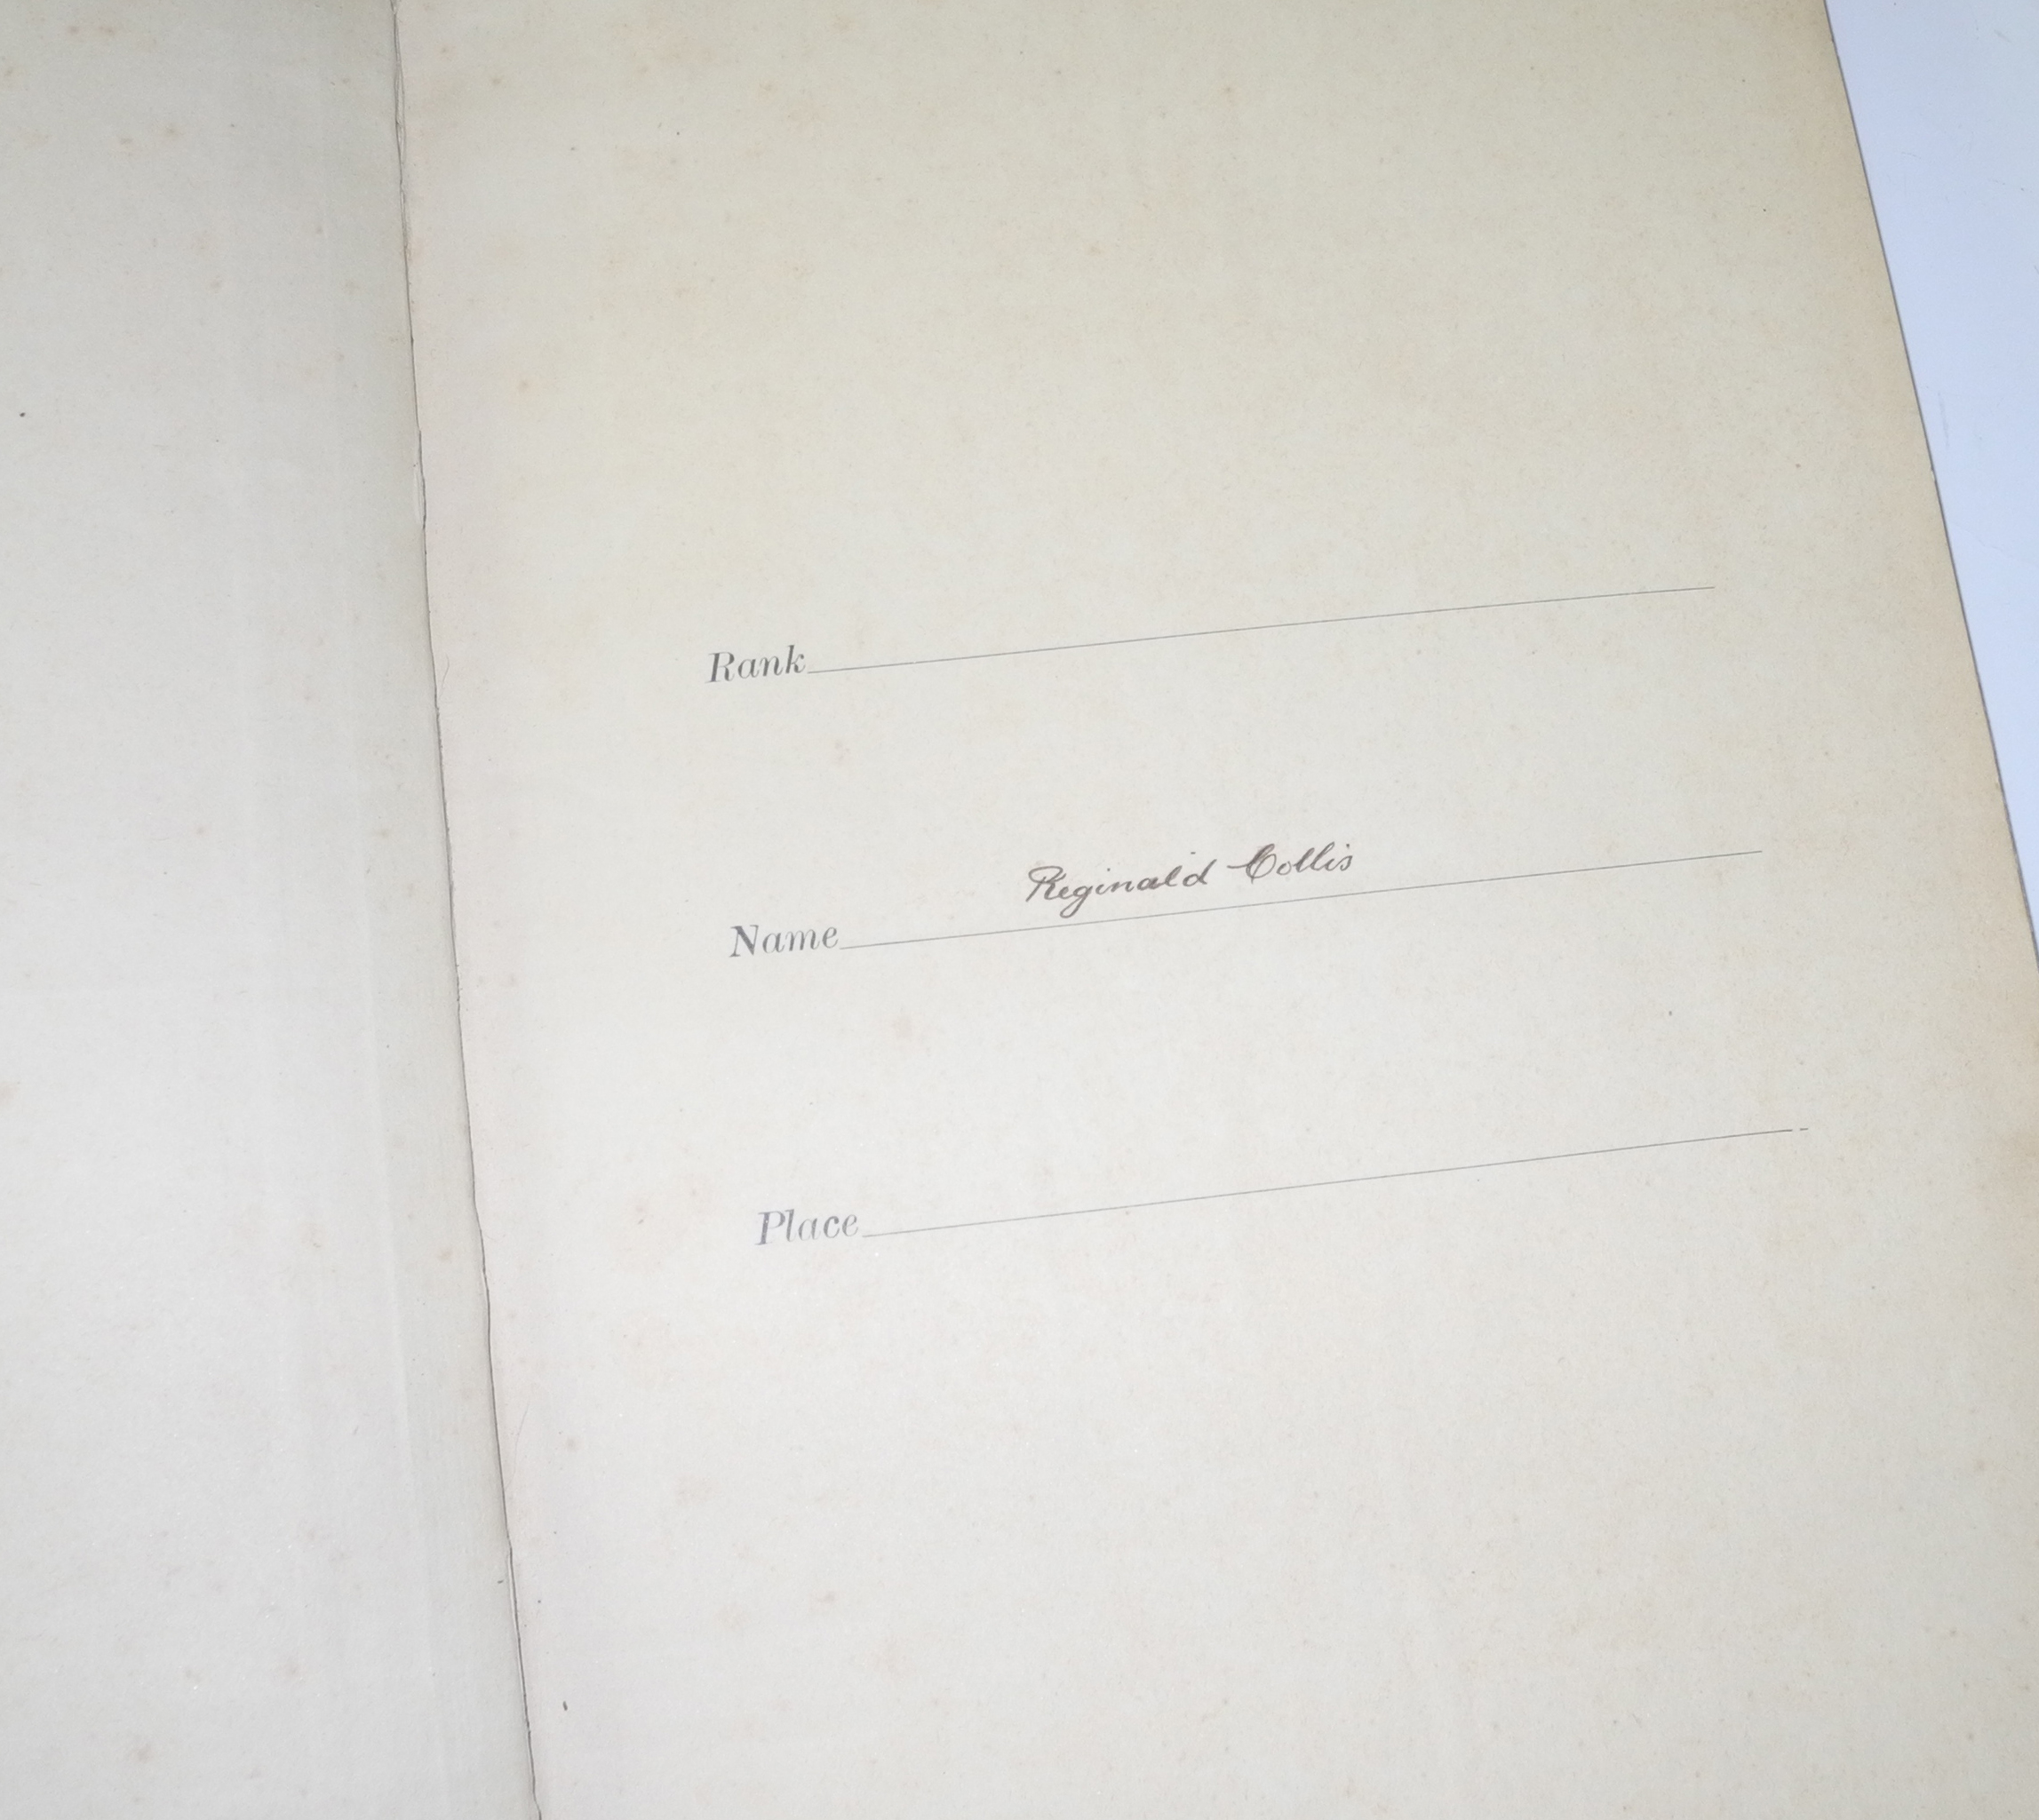 RFC log book from 1913-1916